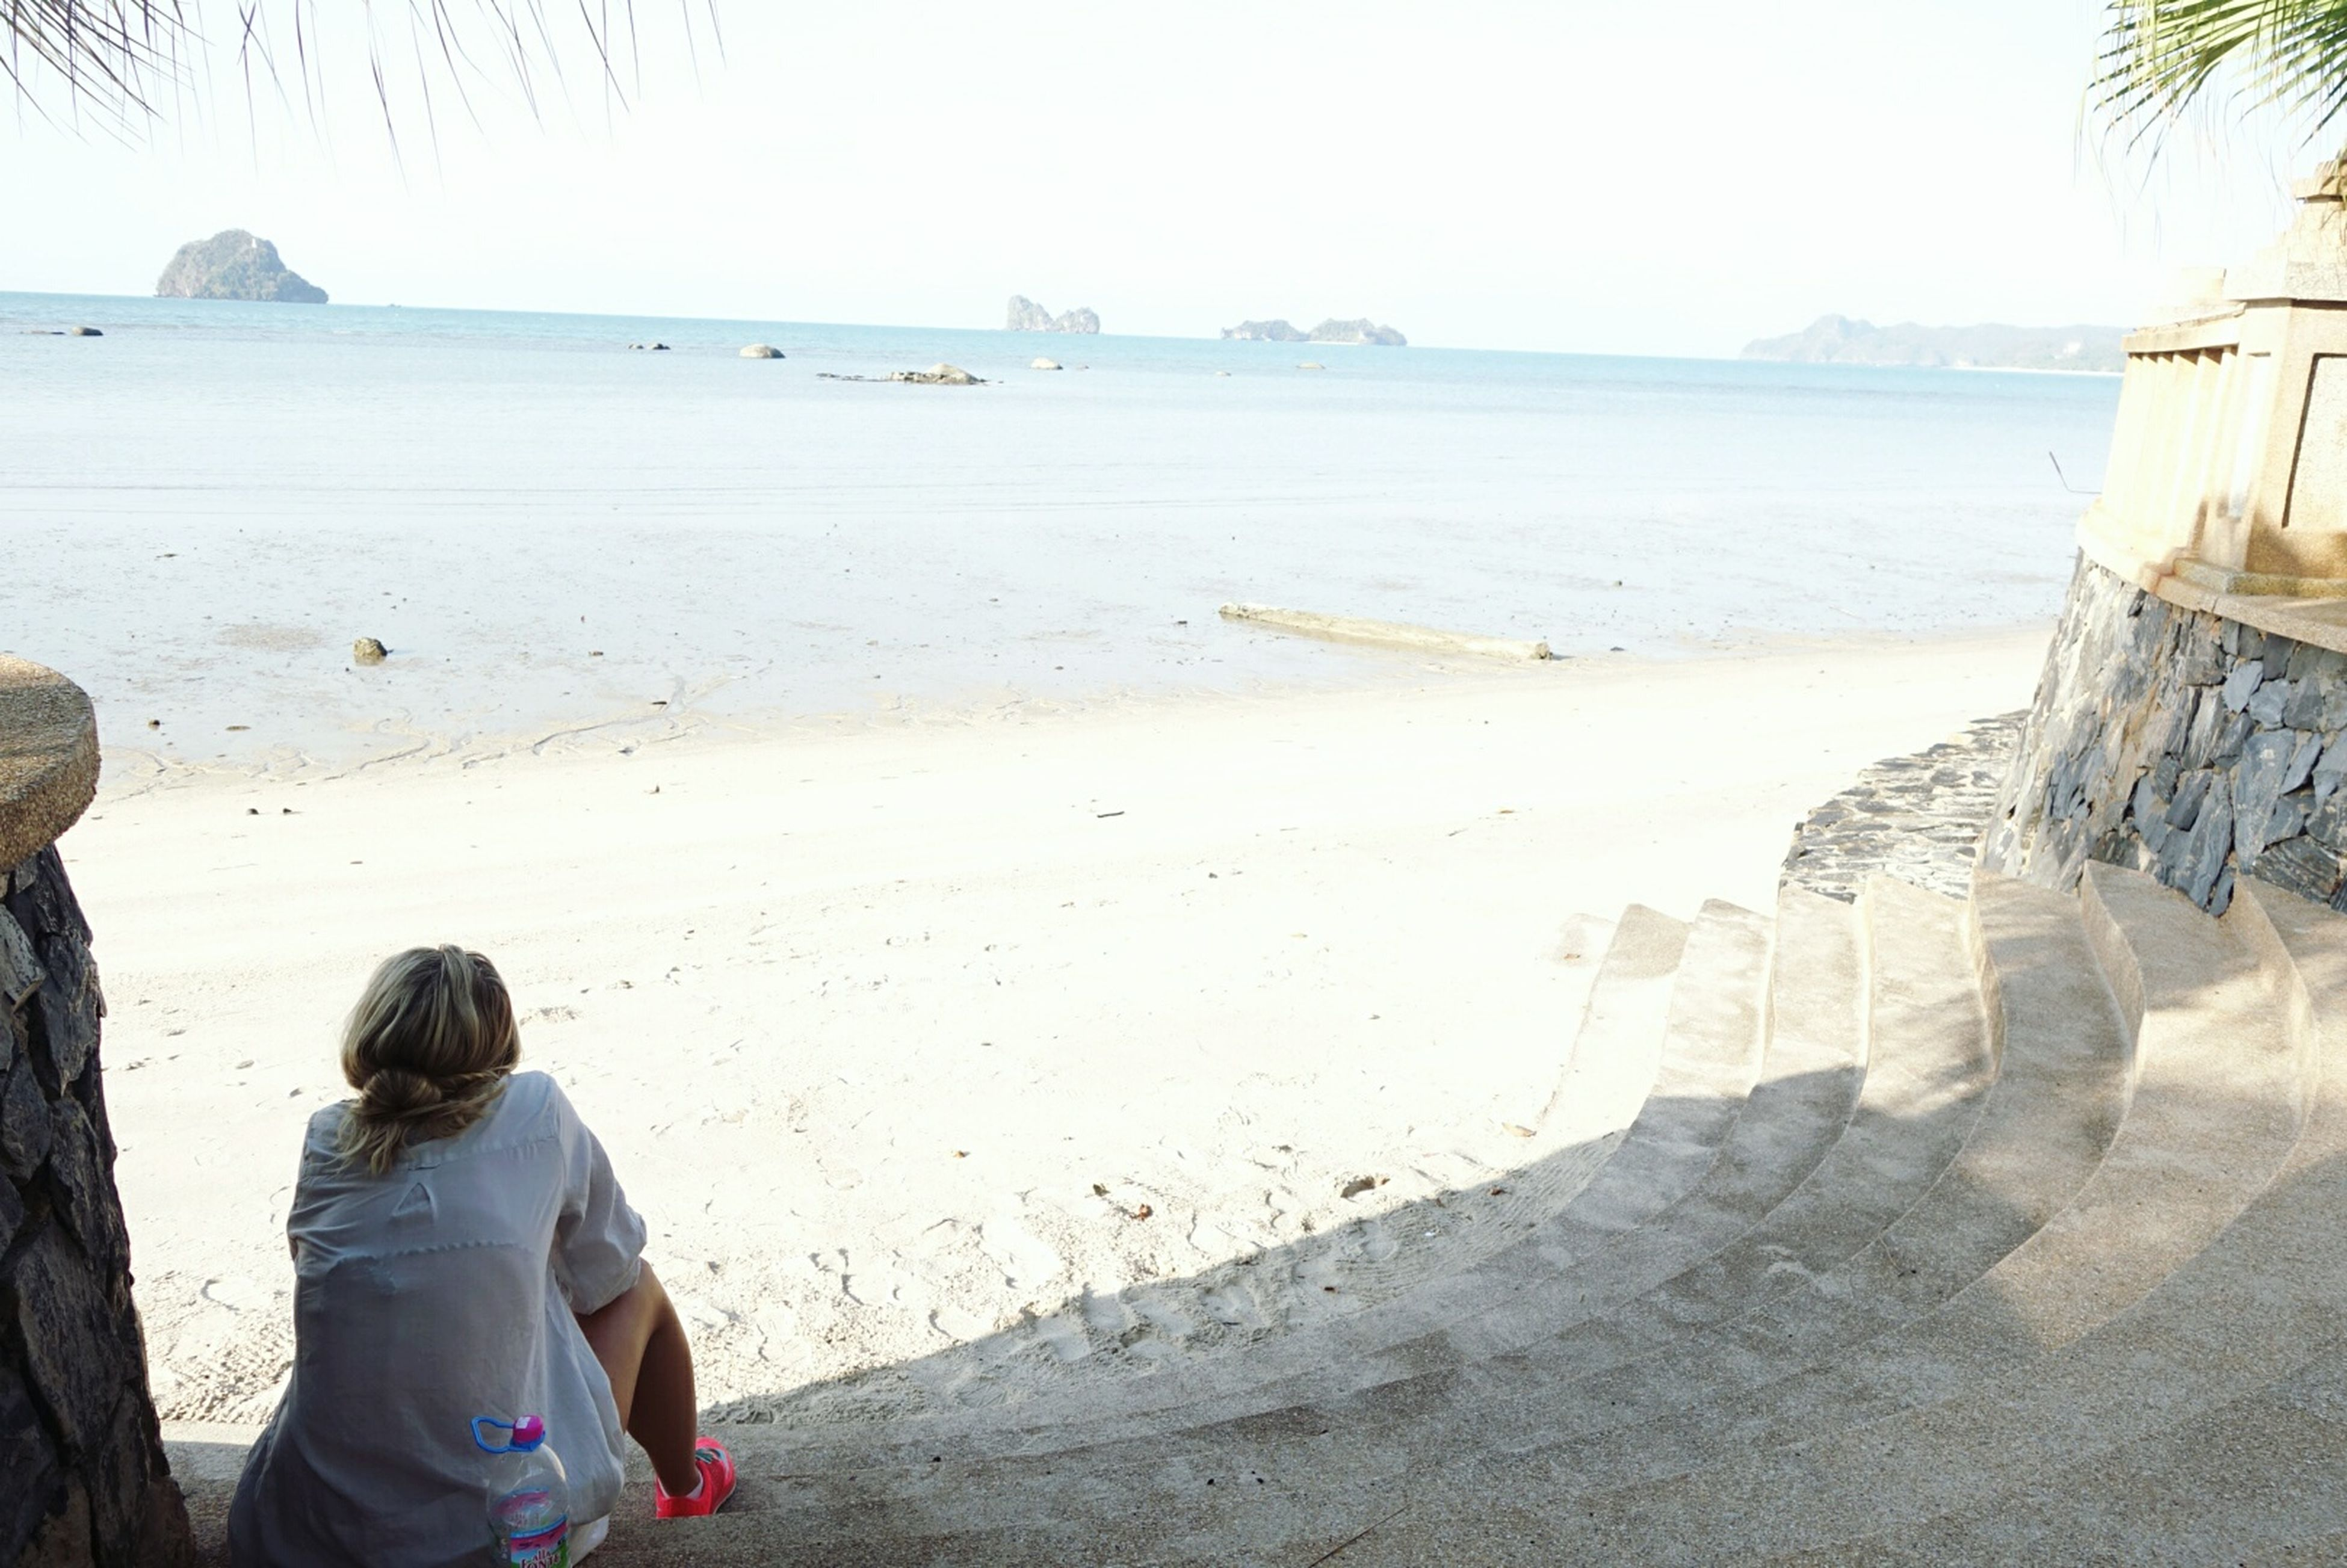 beach, sea, water, shore, sand, leisure activity, lifestyles, rear view, horizon over water, vacations, tranquility, tranquil scene, clear sky, beauty in nature, relaxation, men, scenics, full length